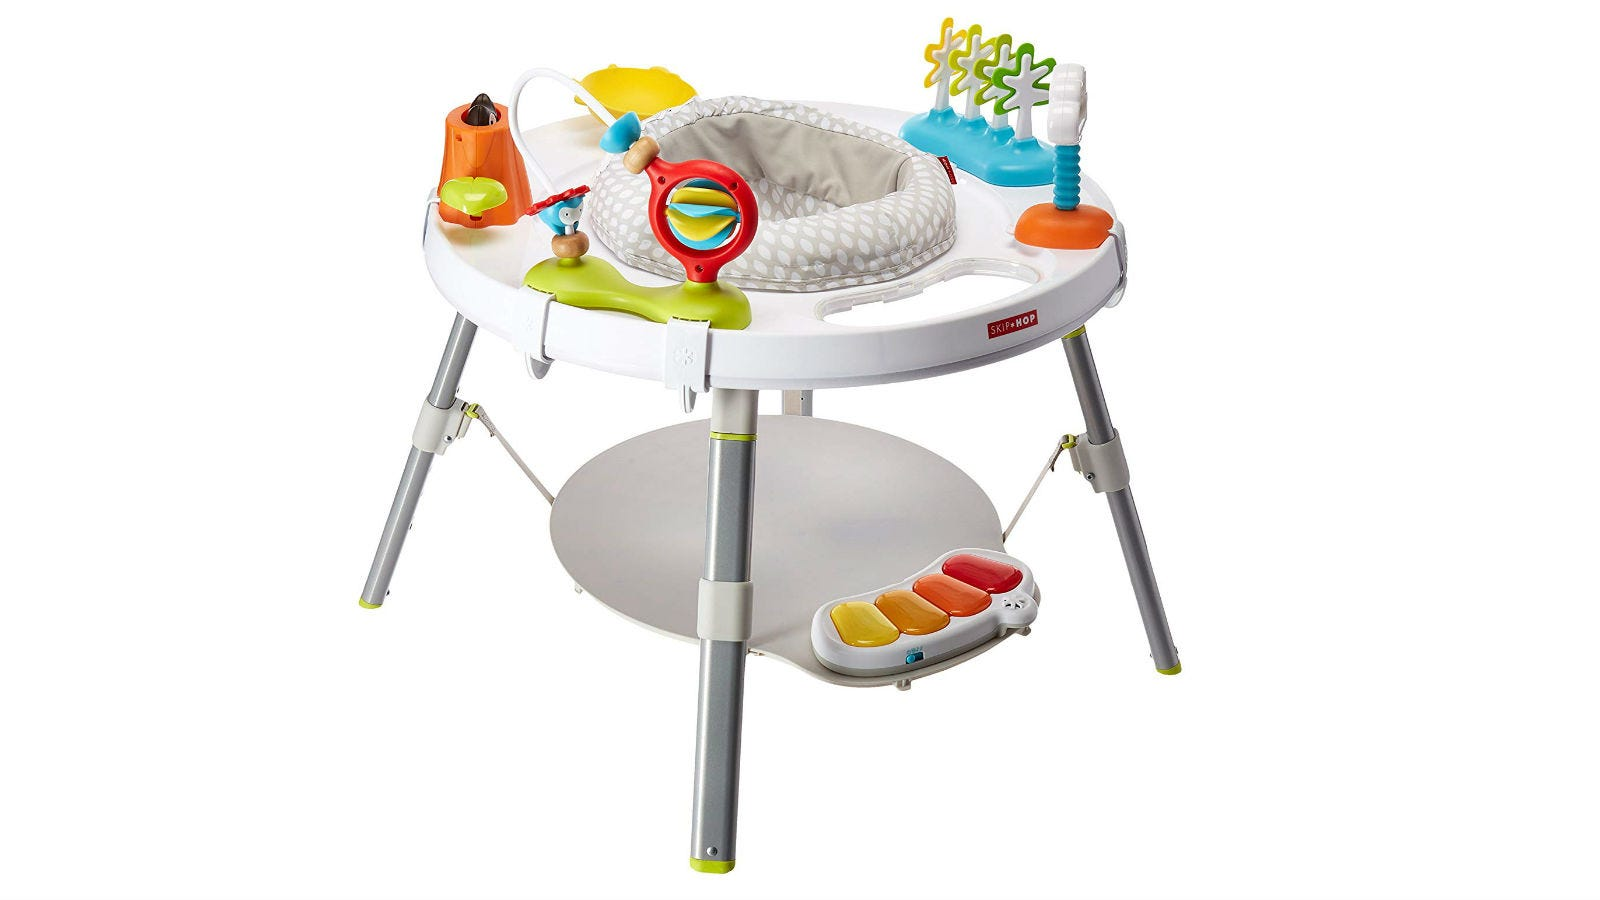 The Skip Hop Explore and More Activity Center.